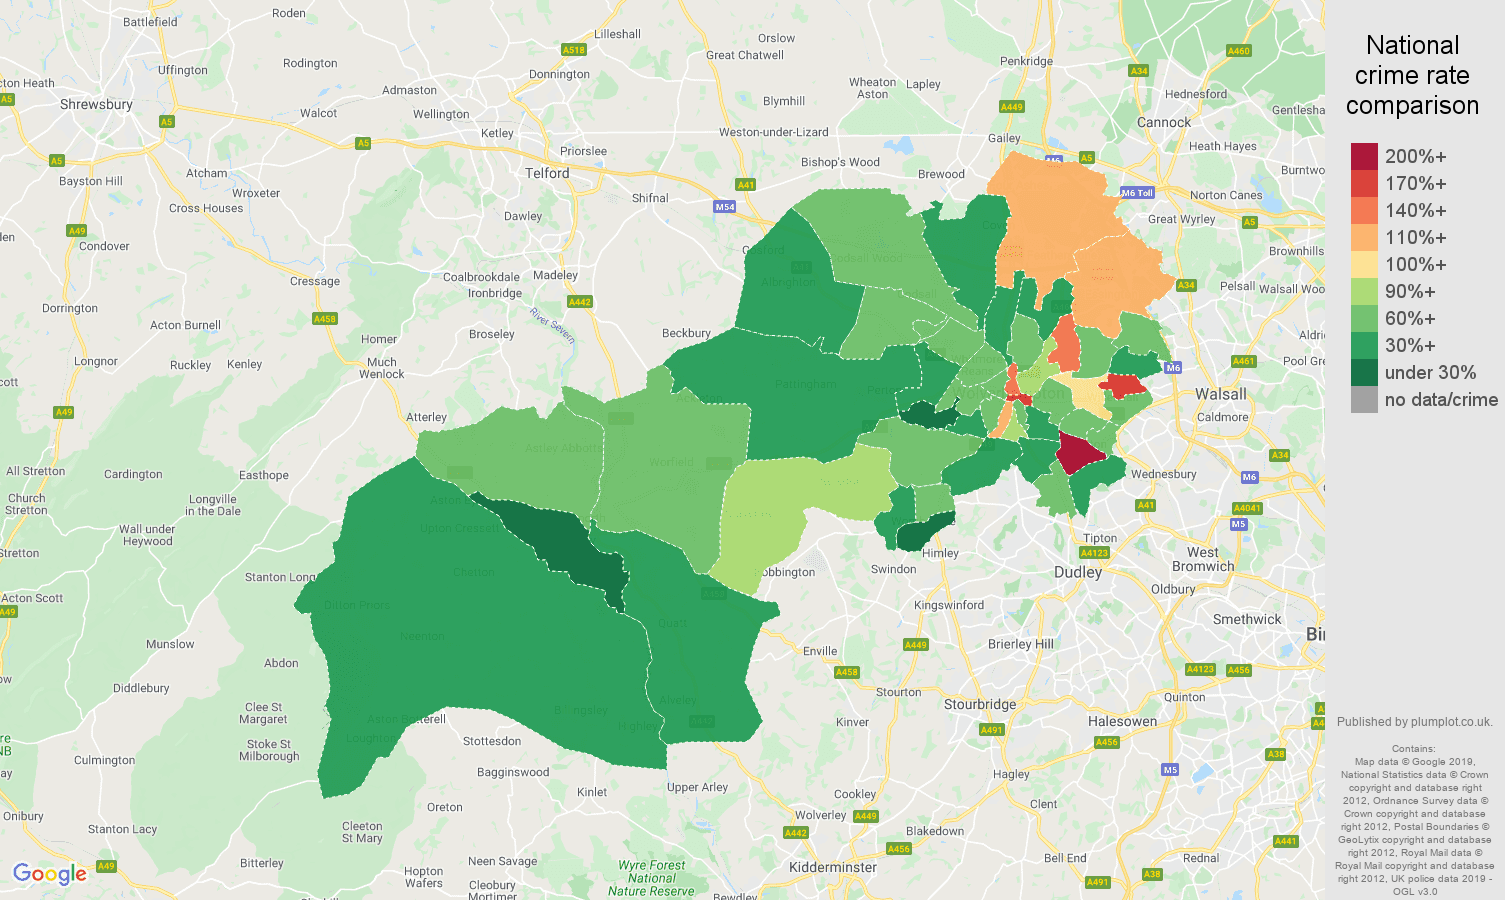 Wolverhampton other theft crime rate comparison map